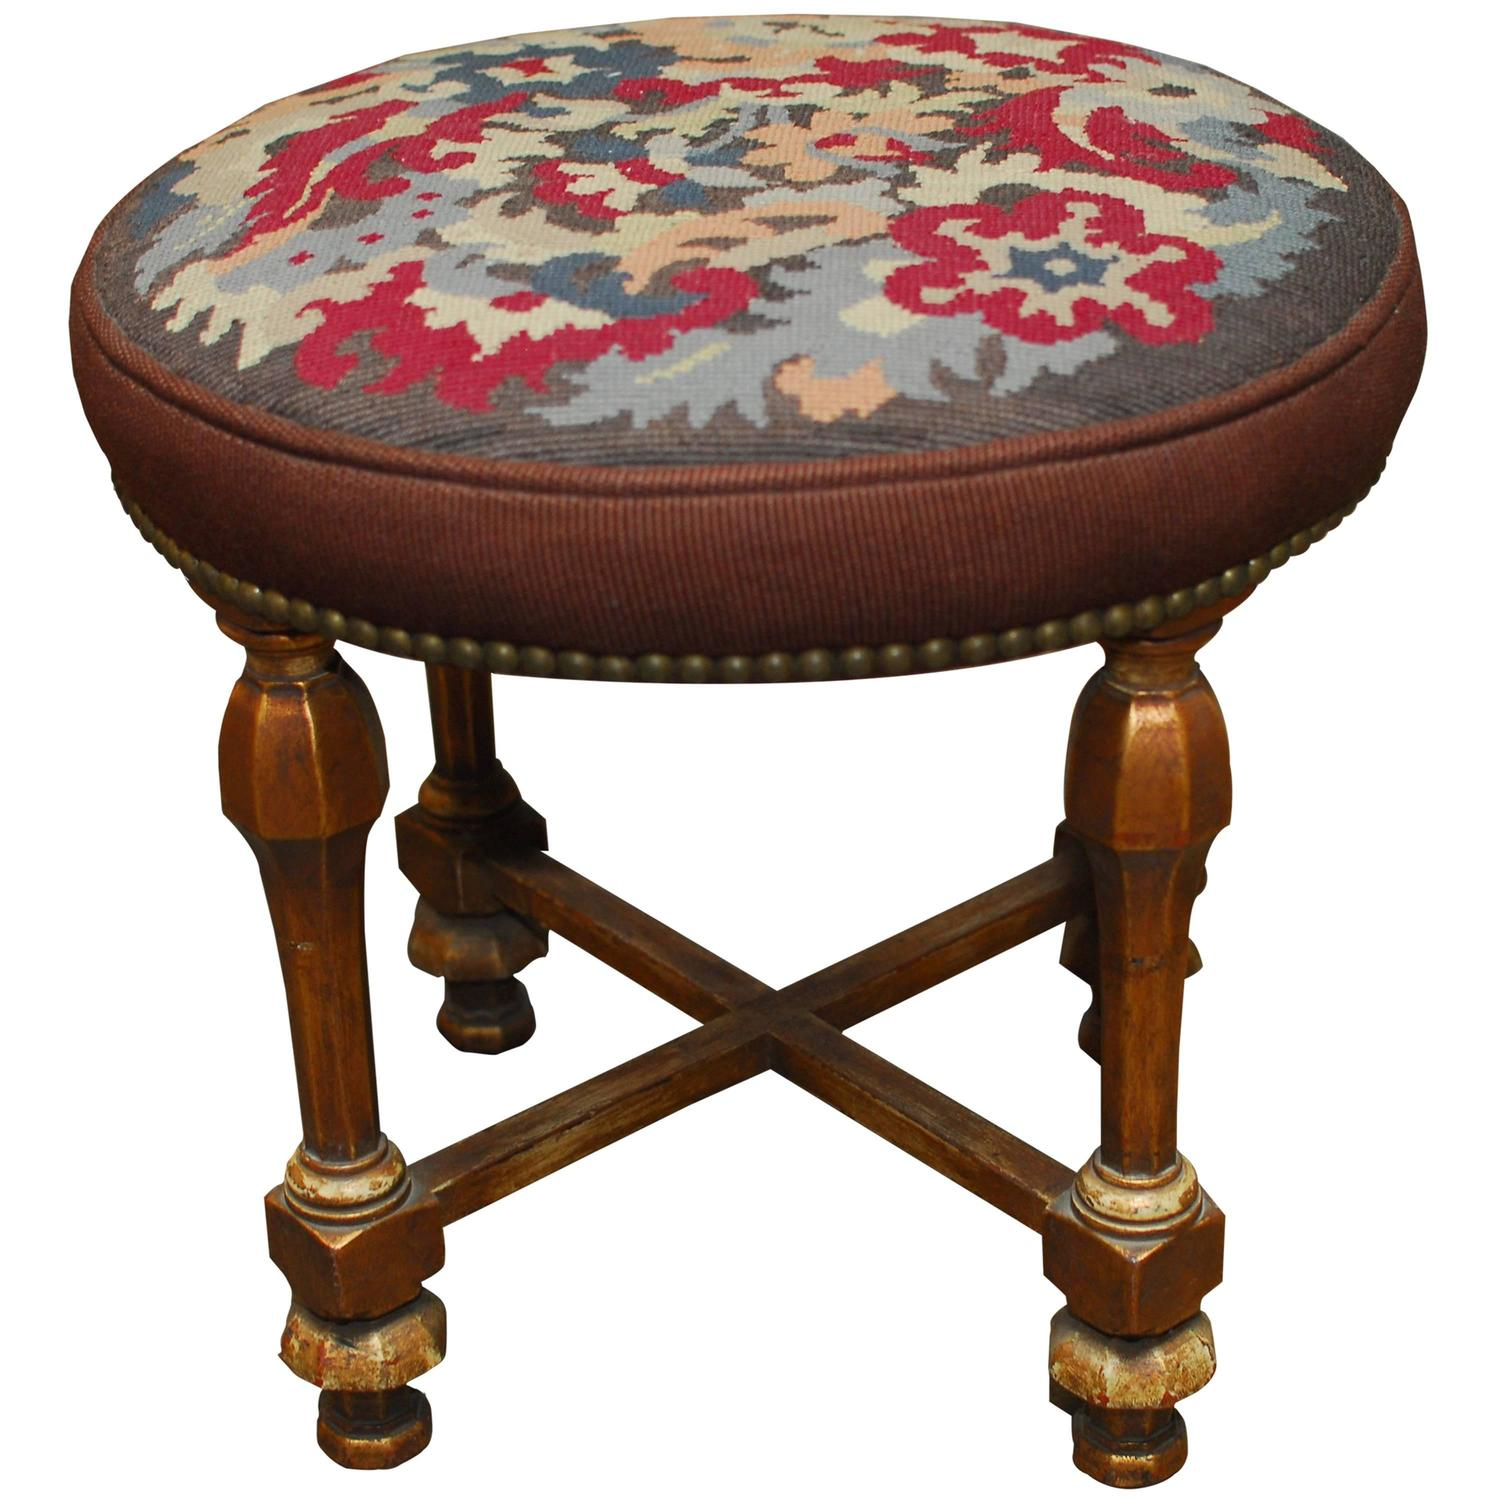 Louis Xvi Style Giltwood Tabouret Stool For Sale At 1stdibs